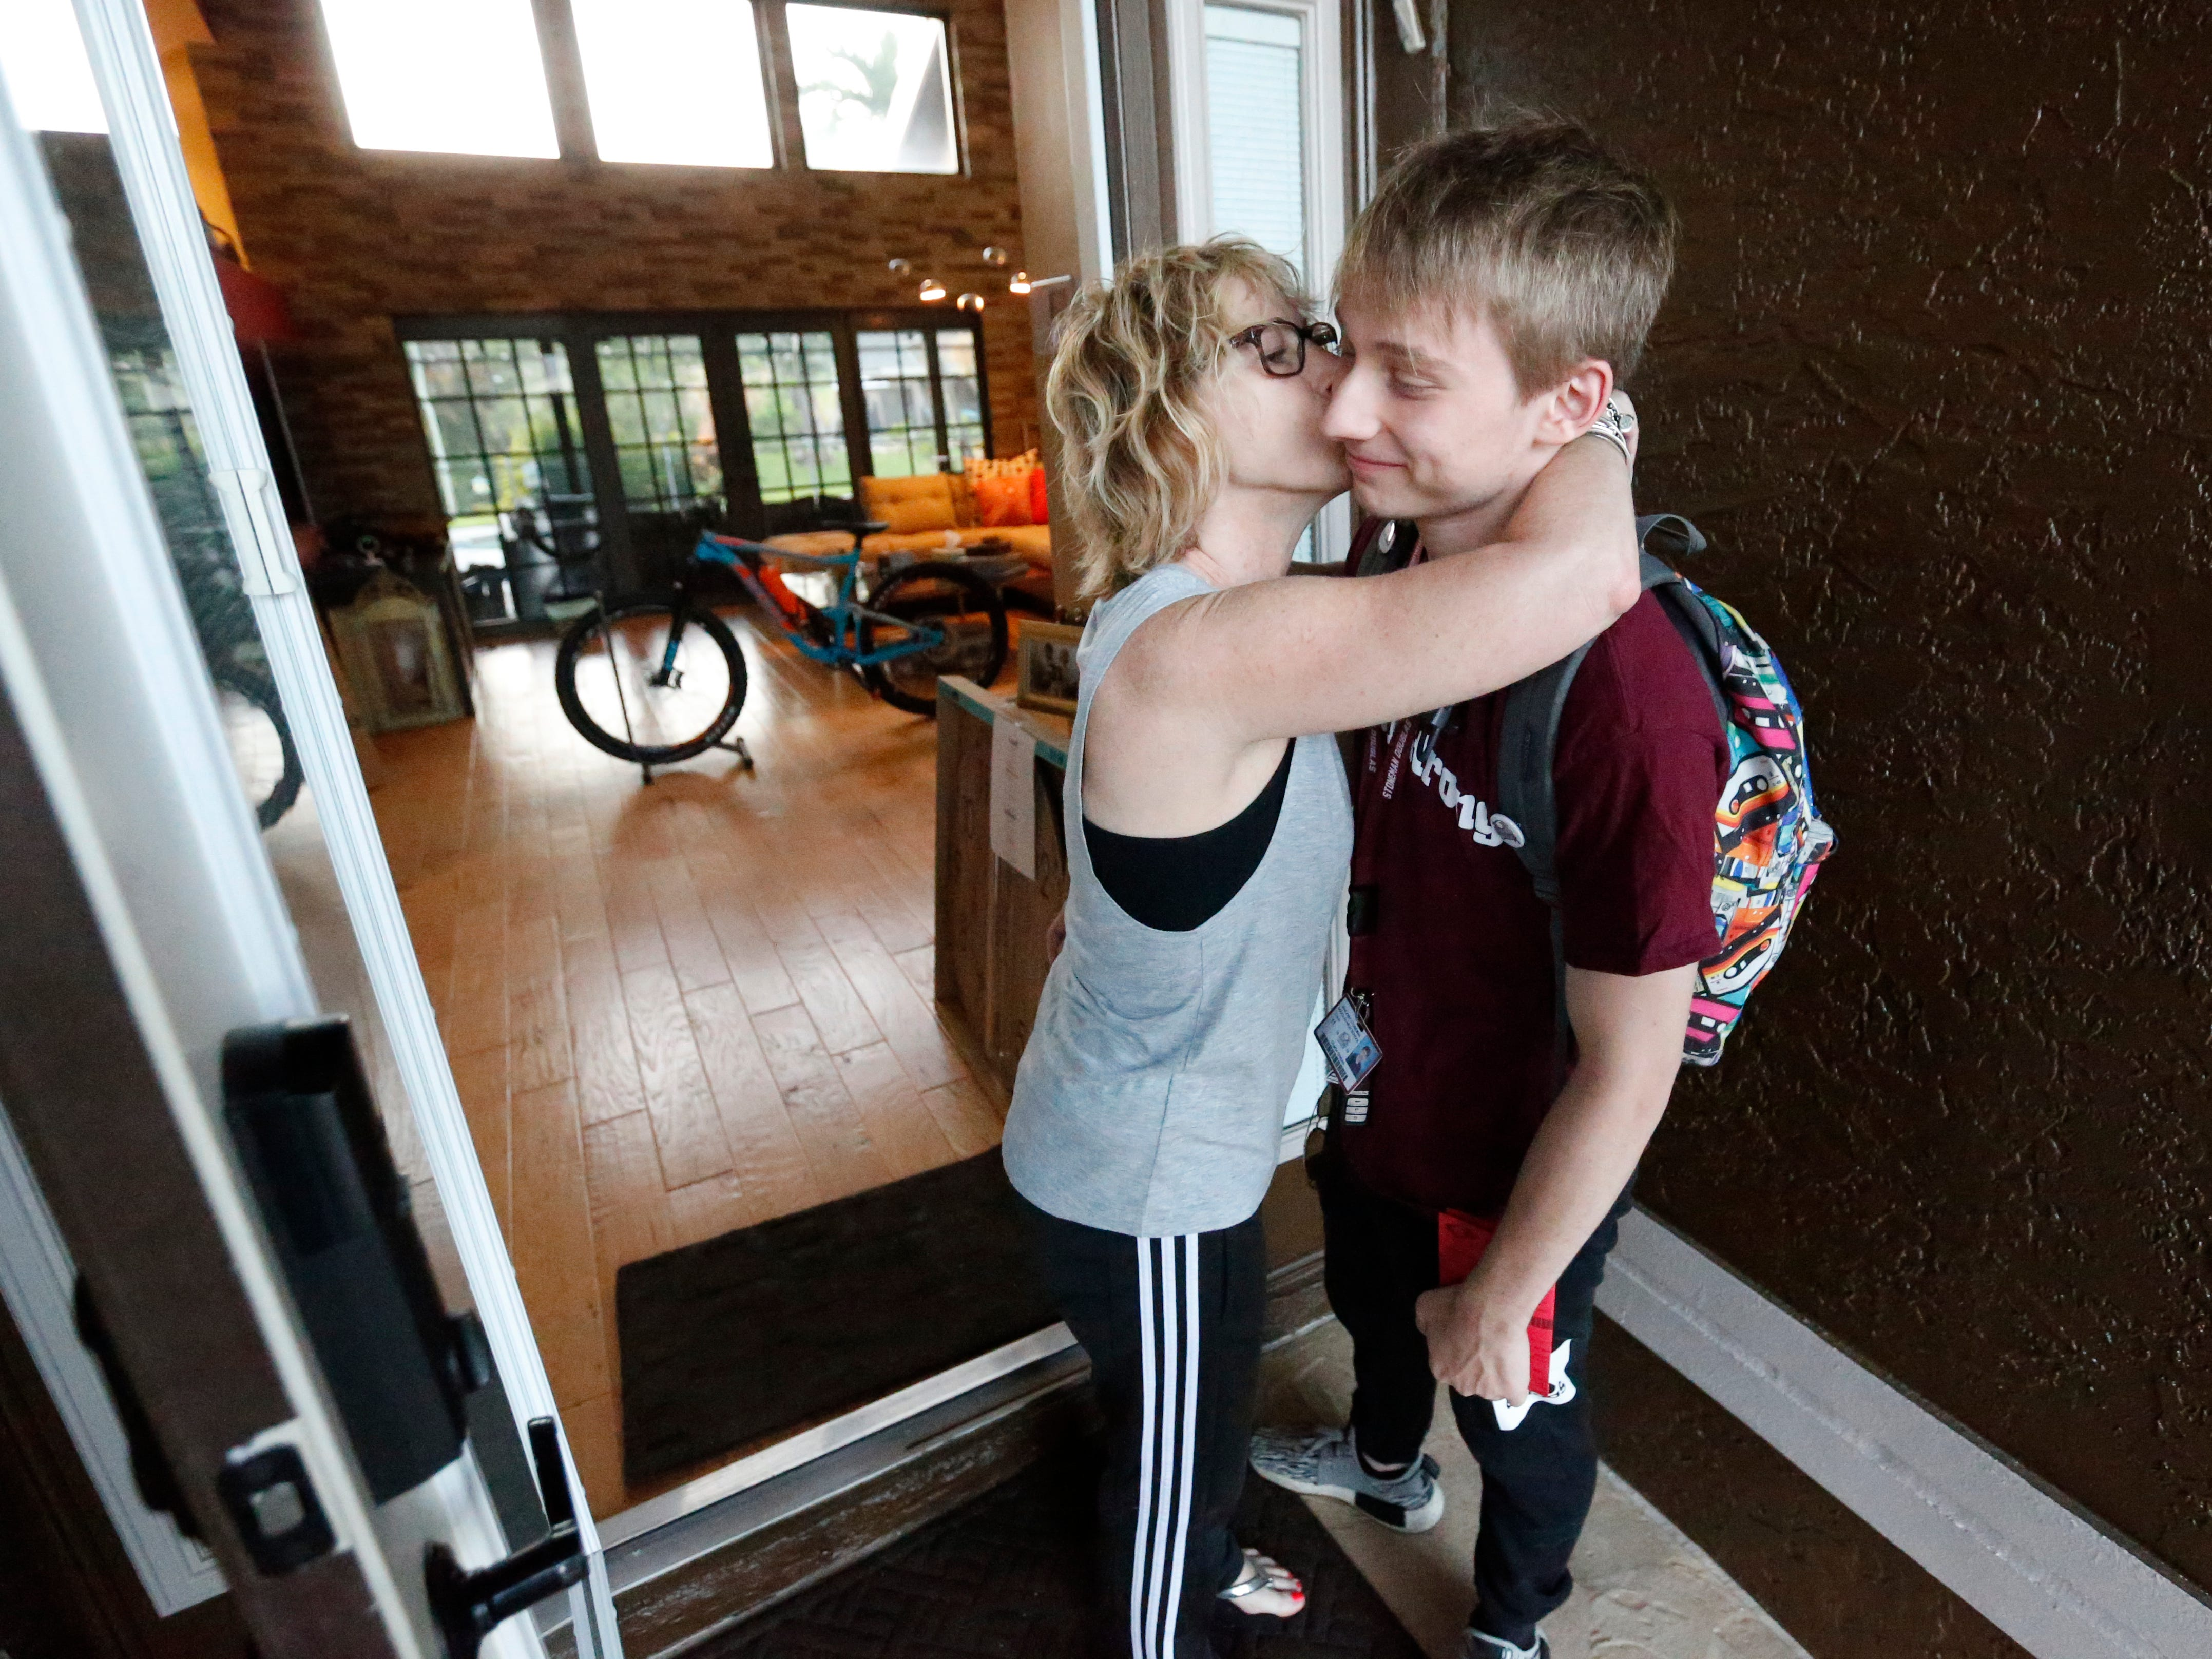 Charlie Shebes, right, 16, a junior at Marjory Stoneman Douglas High School, gets a kiss from his mother Amy as he leaves for school, Weds. , Aug. 15, 2018, in Parkland, Fla. Shebes was at the school last year when several of his classmates were shot.  Now, he's going back. Students at the school returned Wednesday, to a more secure campus as they began their first new school year since a gunman killed 17 people in the freshman building.